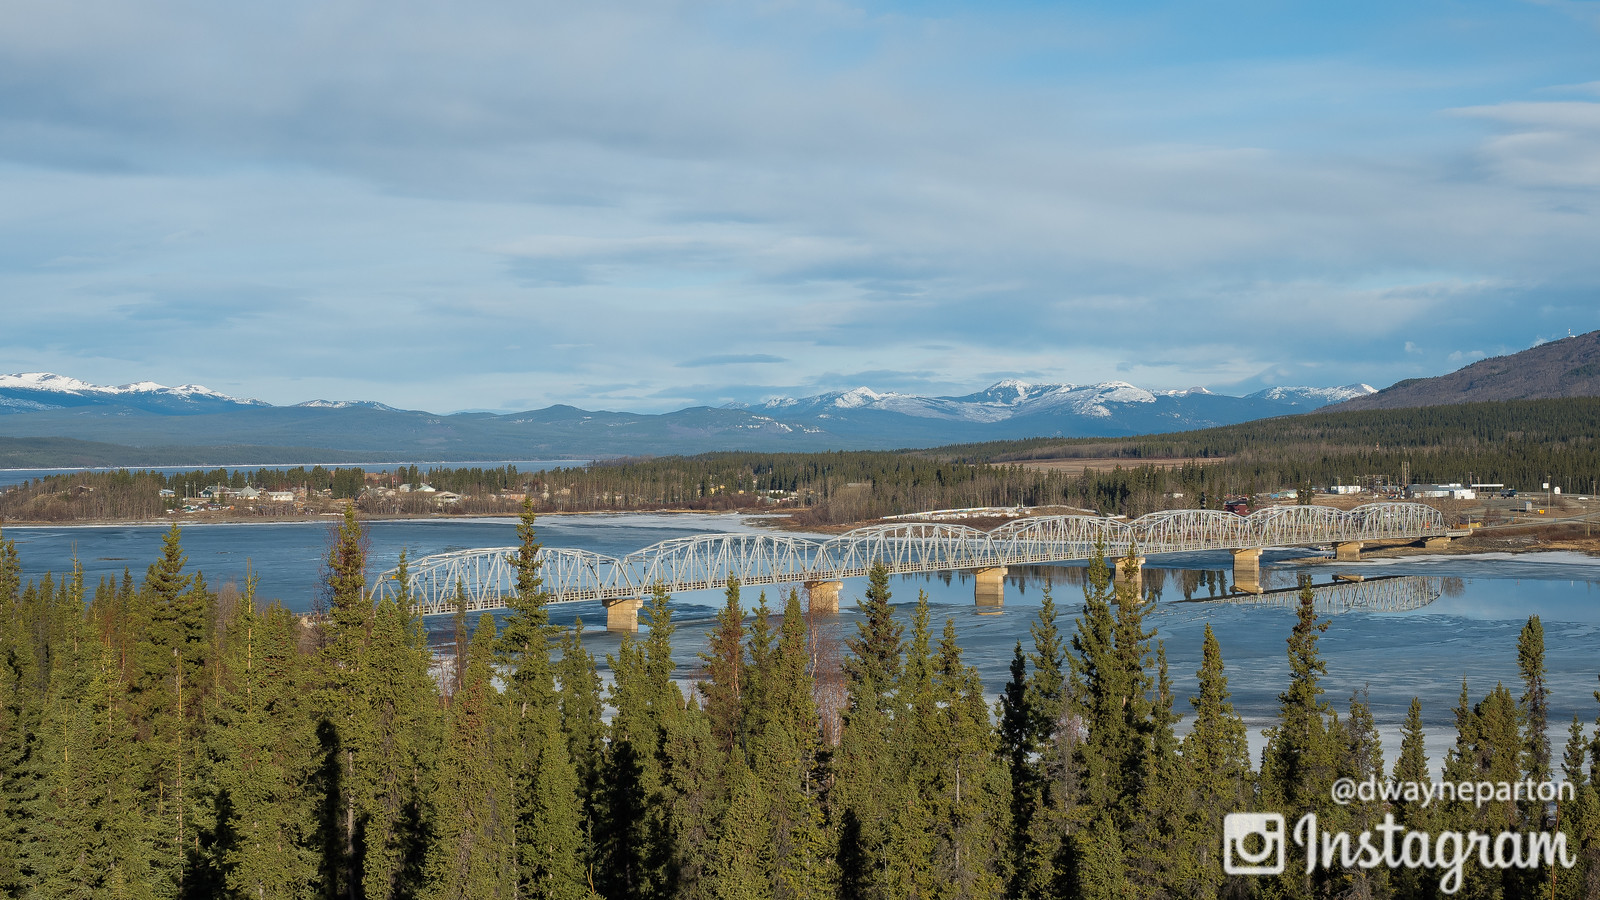 Teslin in the Yukon